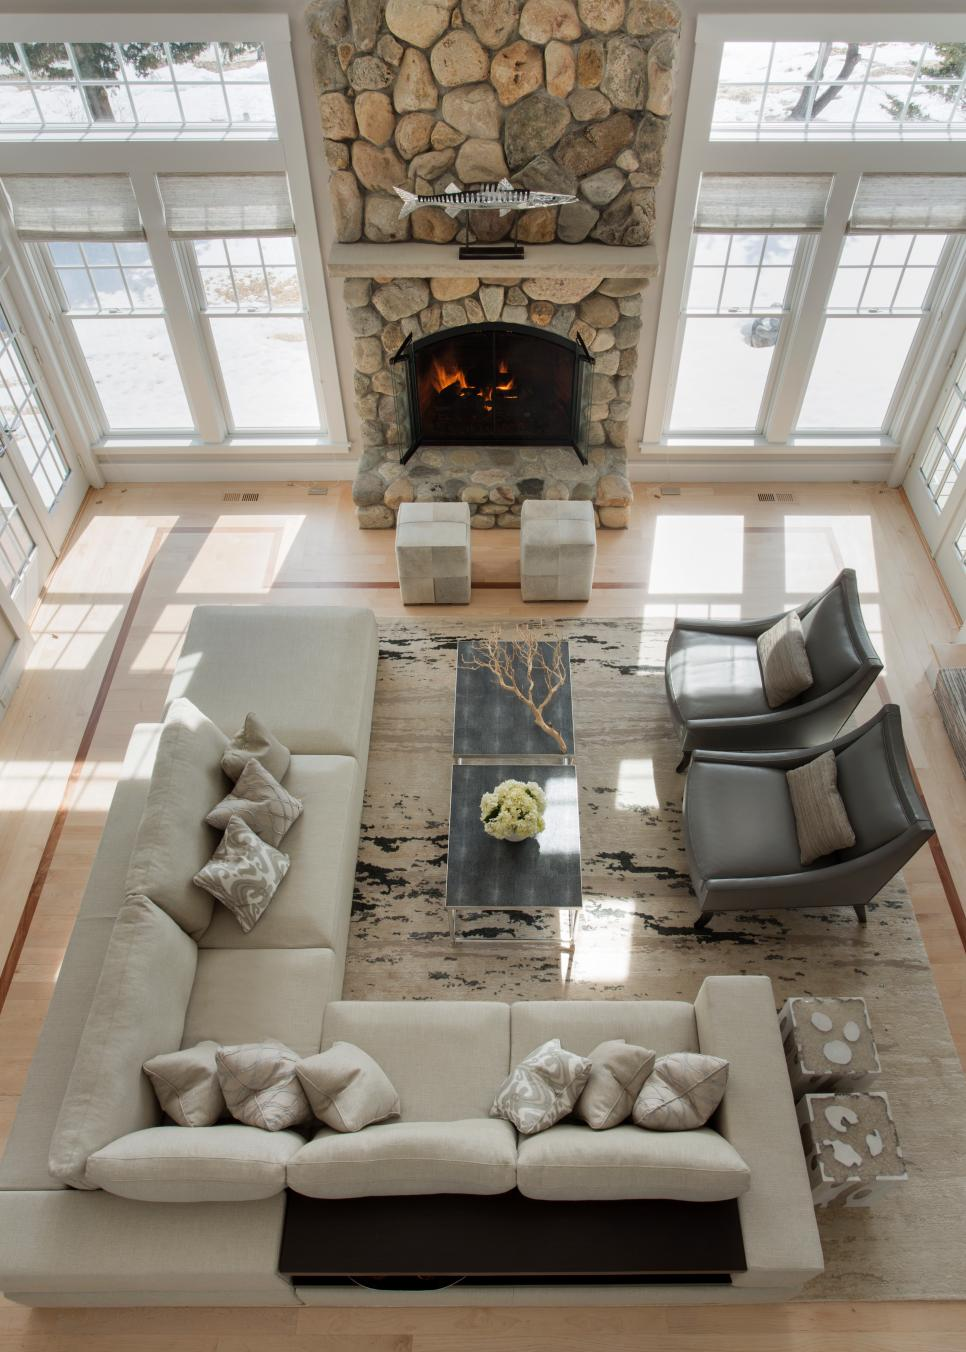 Get inspired with These Fabulous Interior Design Ideas interior design ideas Get Inspired with These Fabulous Interior Design Ideas Get inspired with These Fabulous Interior Design Ideas 3